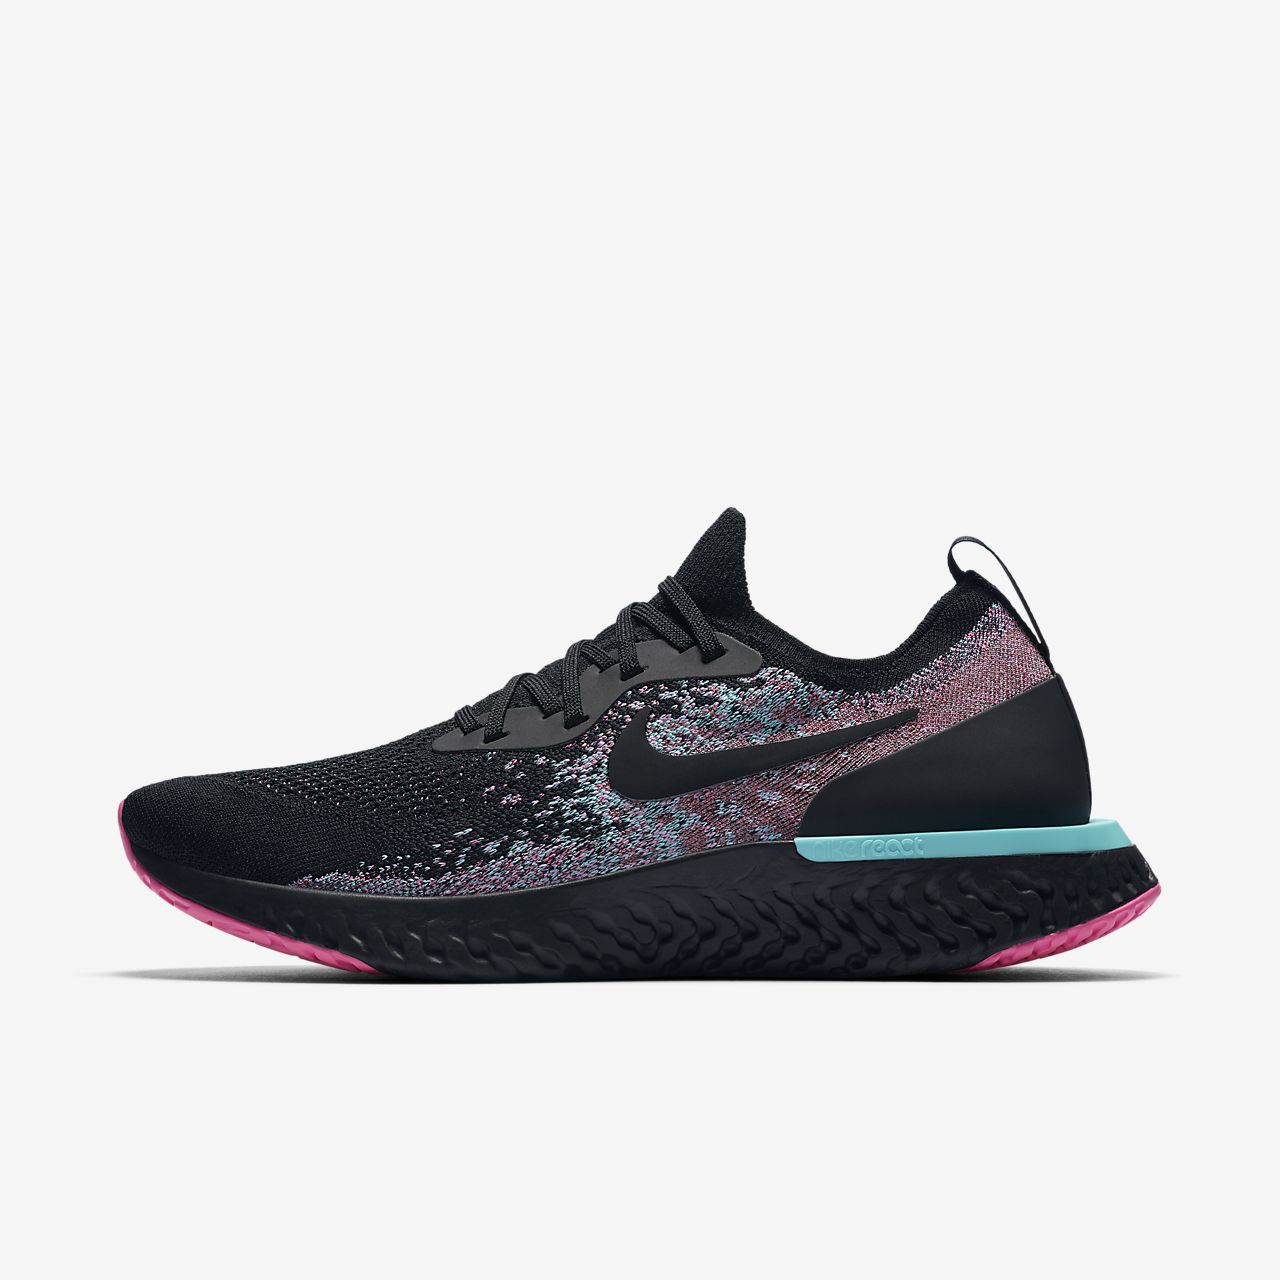 060a9d34a88 Nike Epic React Flyknit 1 Men s Running Shoe. Nike.com